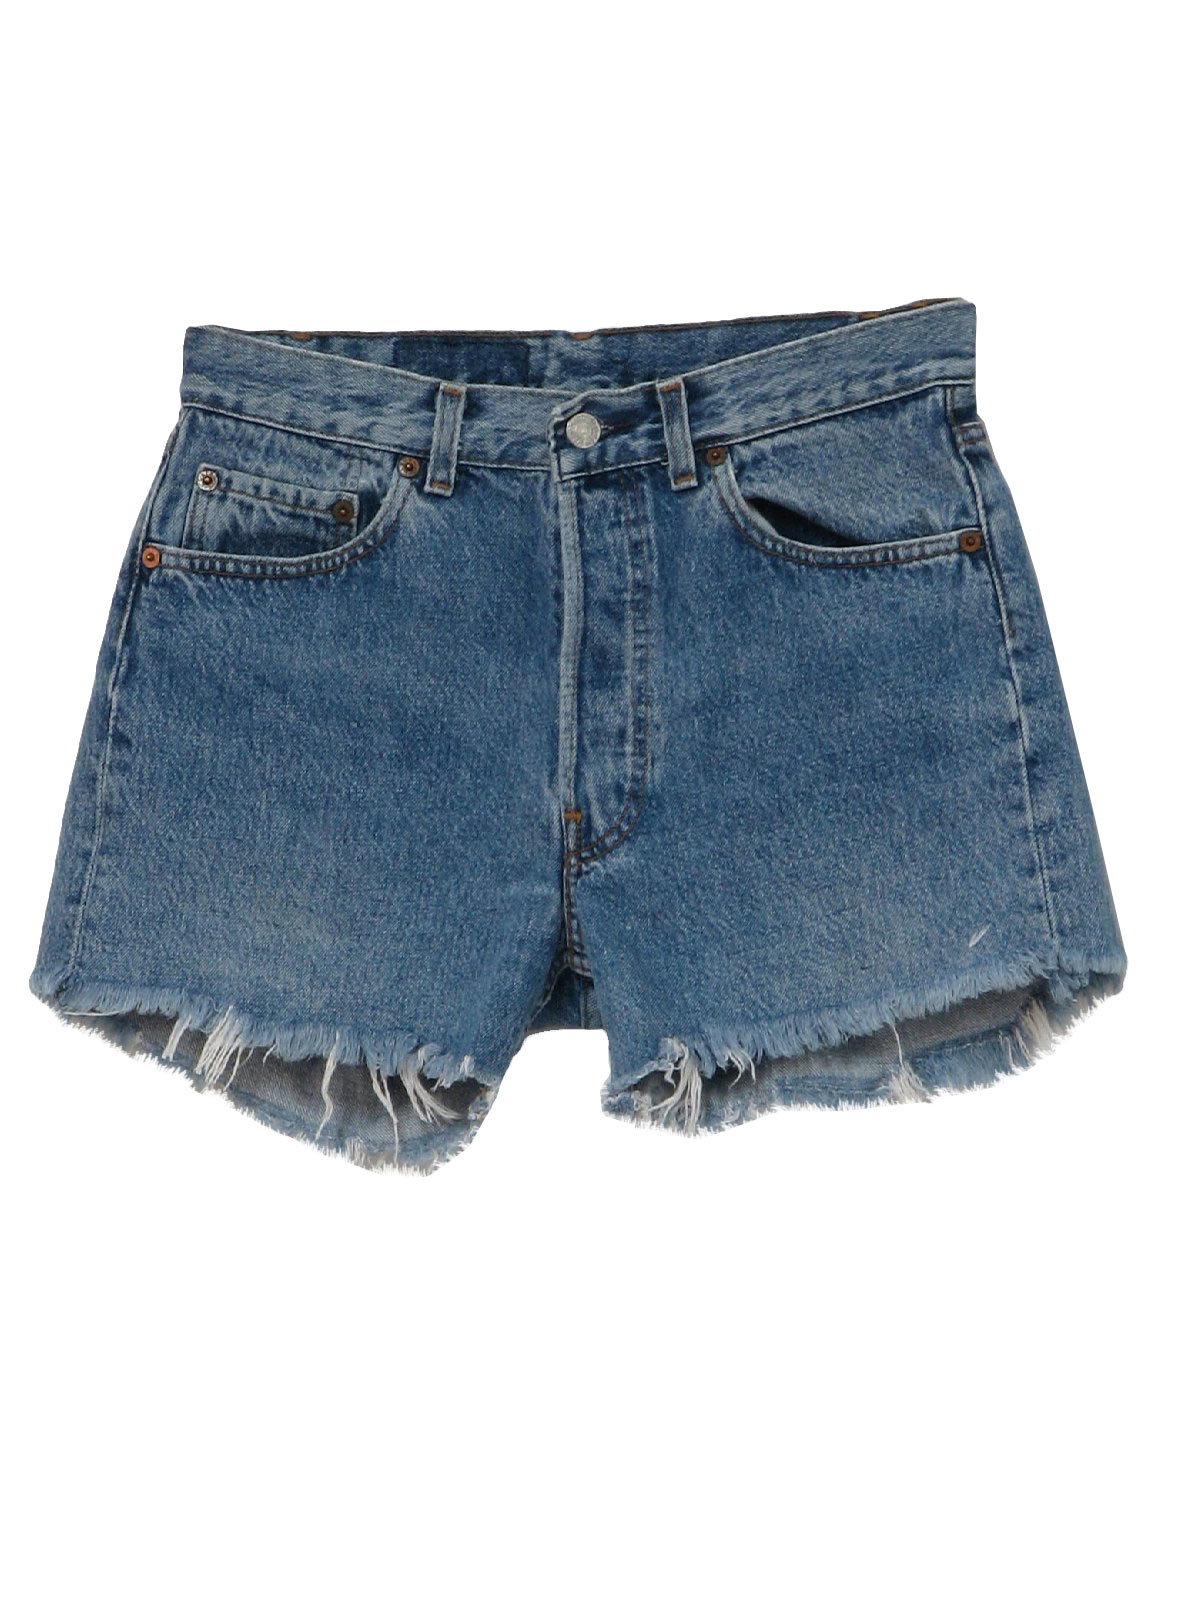 Men In Cutoff Jean Shorts